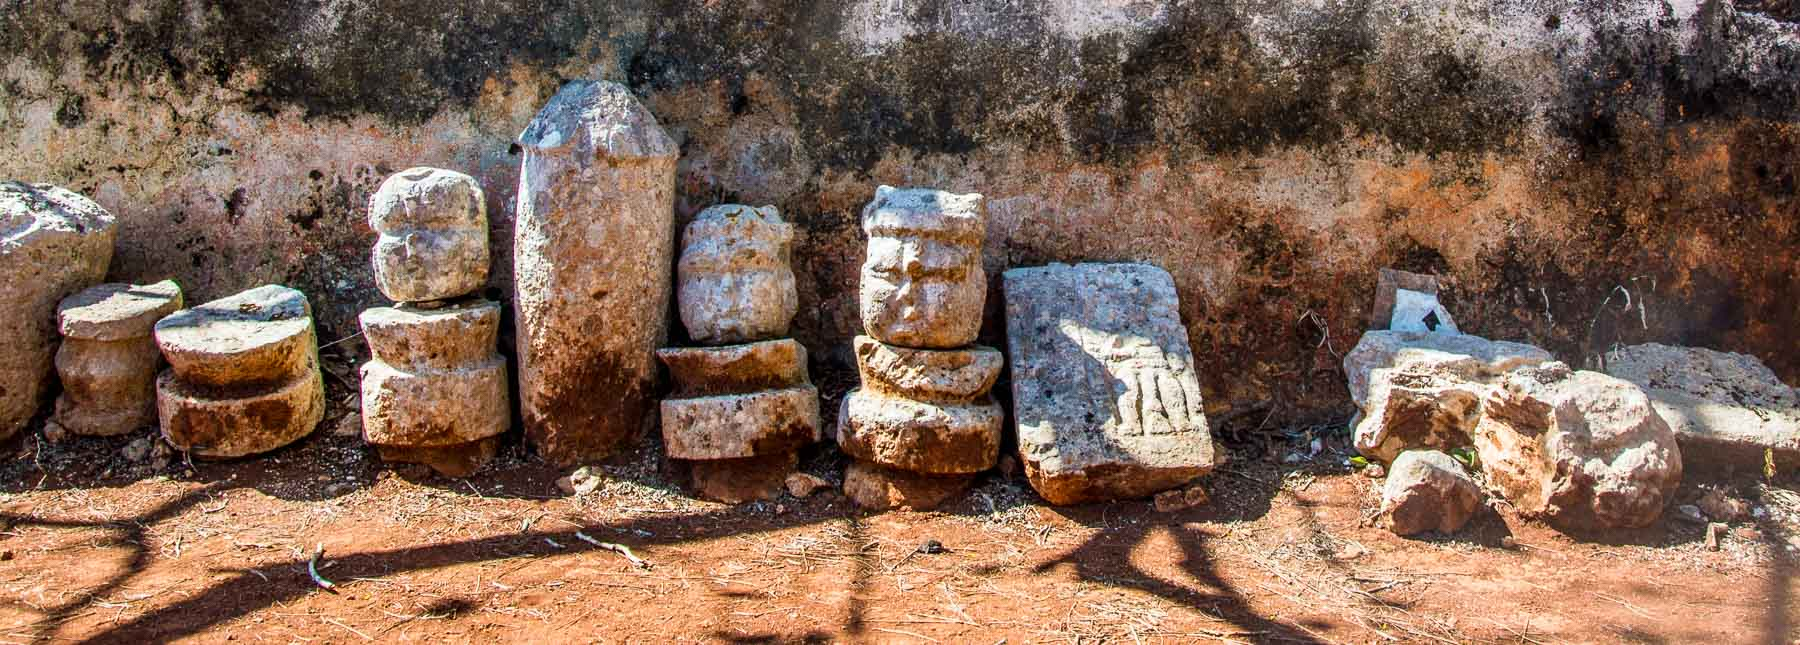 Carved rocks with Mayan faces.